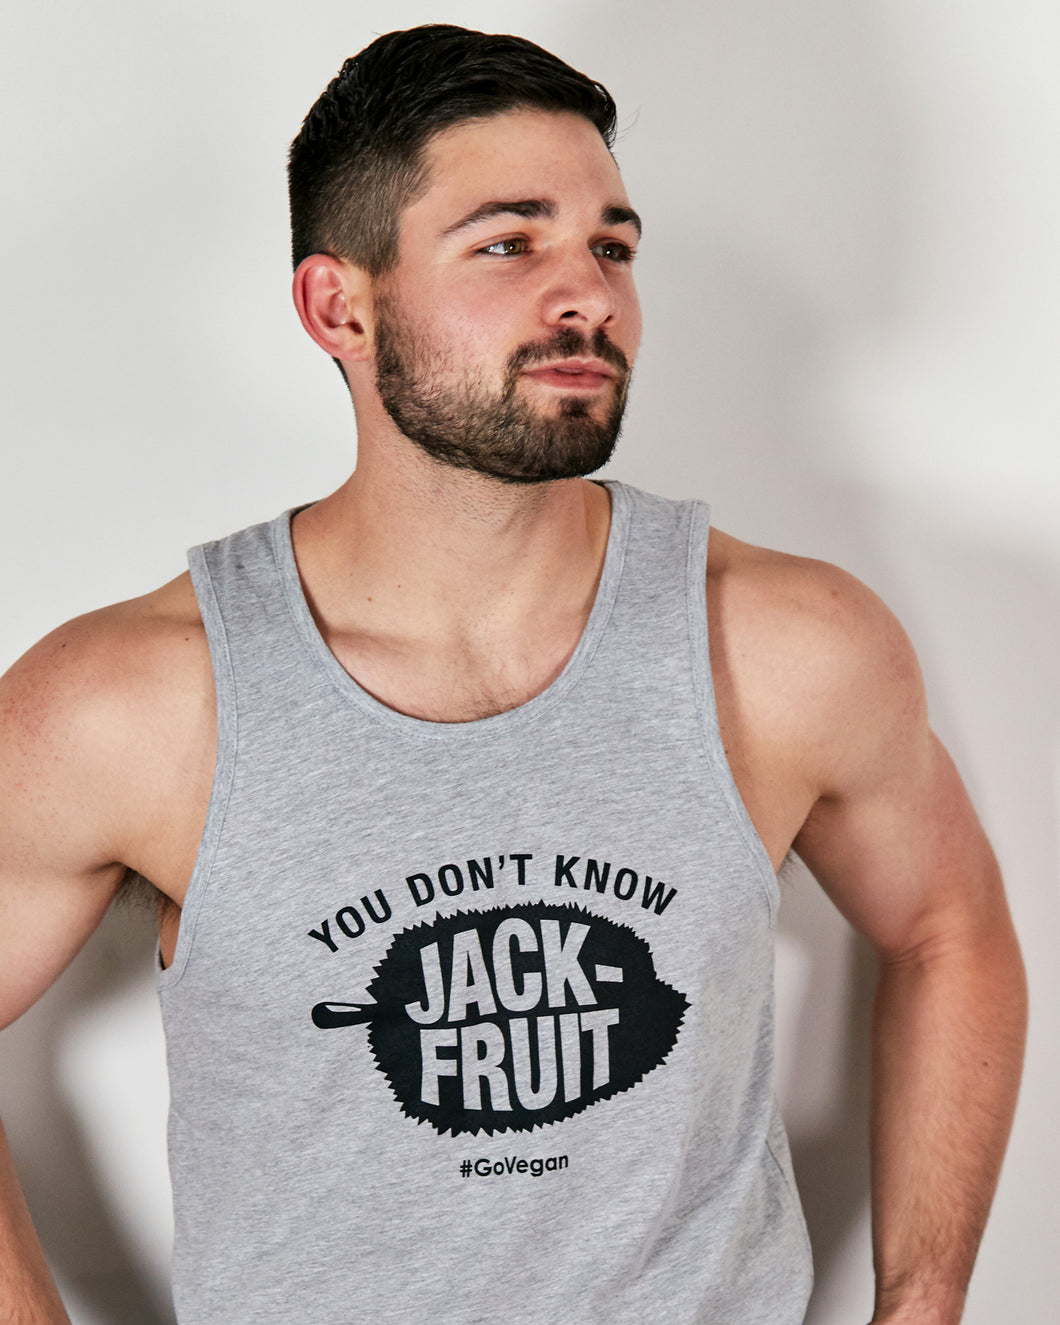 You Don't Know Jackfruit - Sleeveless Tank Top Shirt